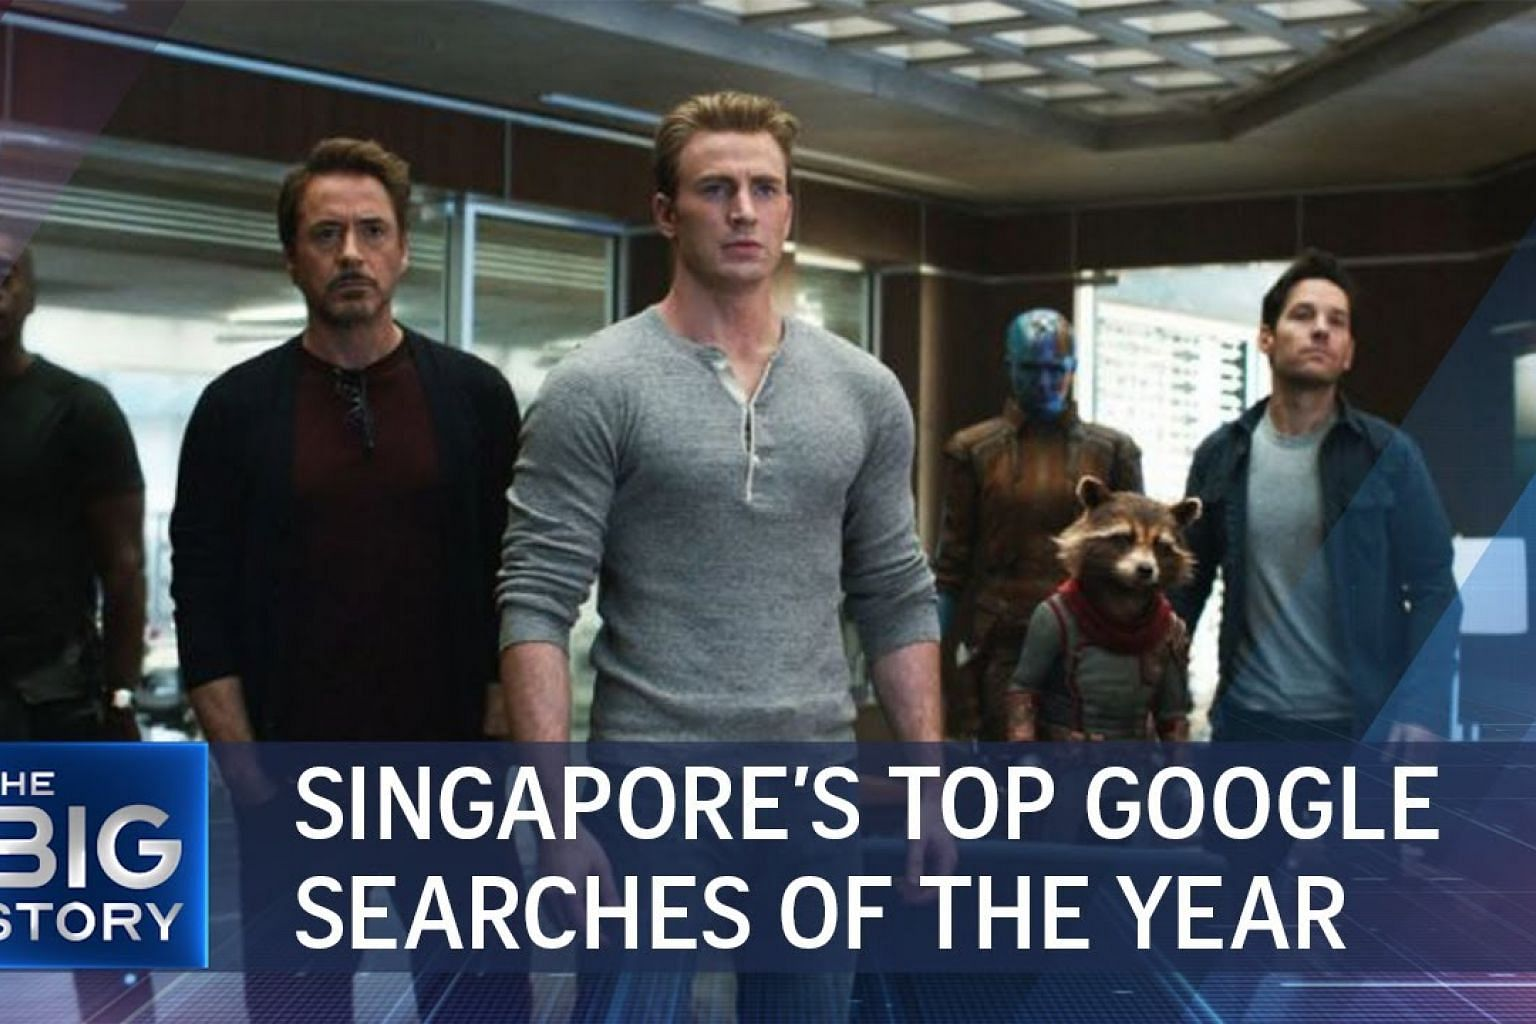 Singapore's top Google searches of the year | THE BIG STORY | The Straits Times